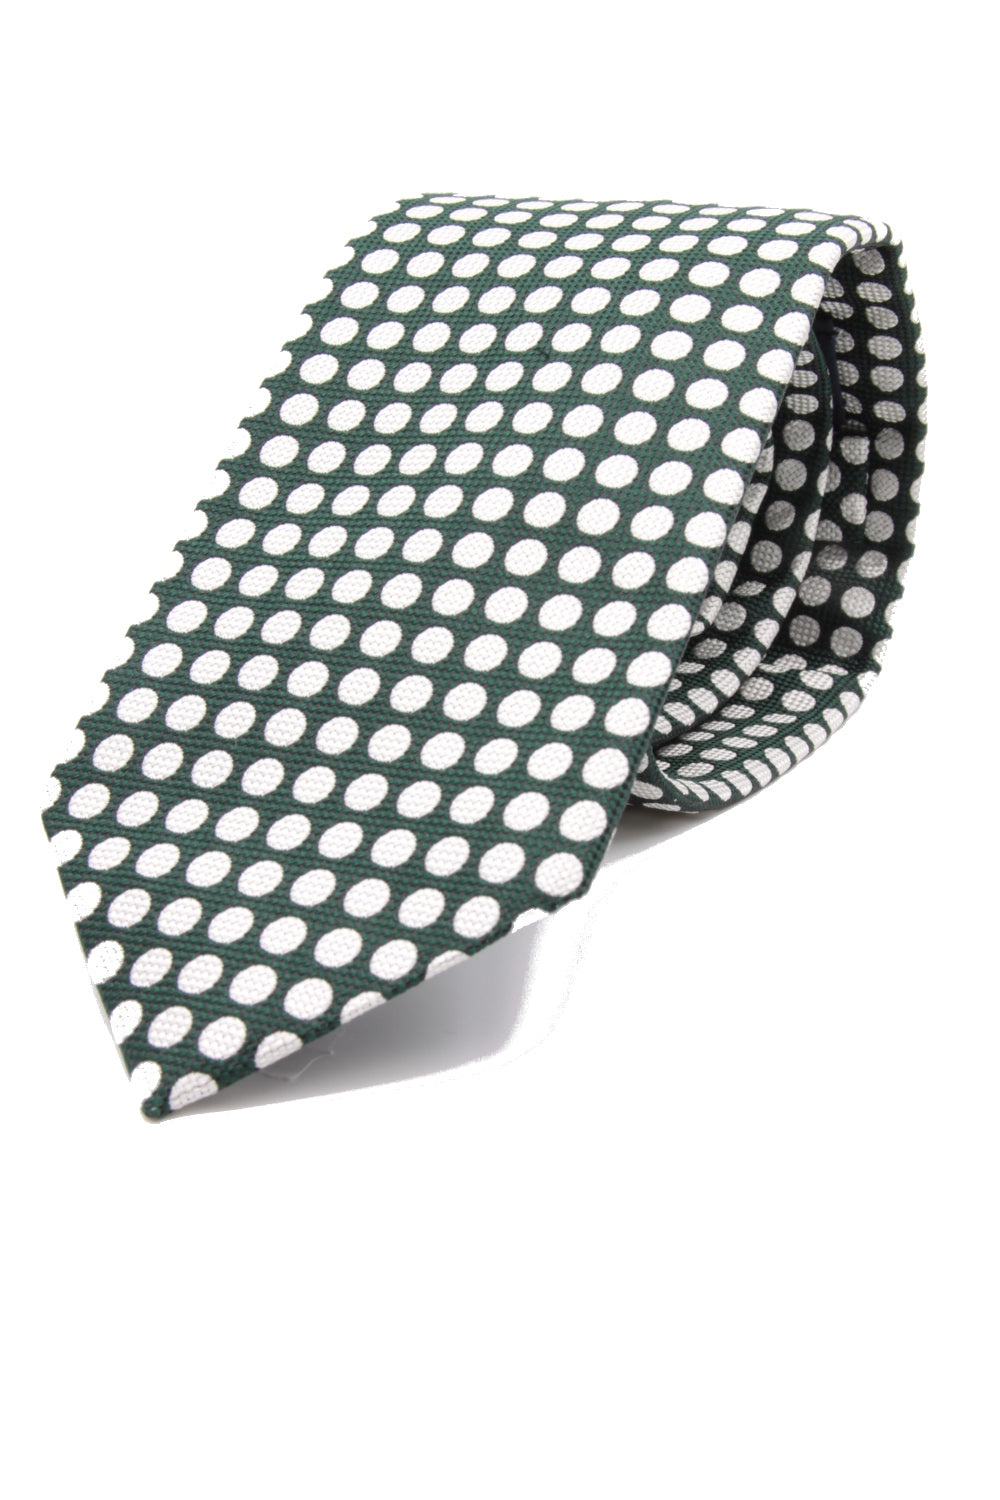 drake's Churchill's spot dark green and white tie